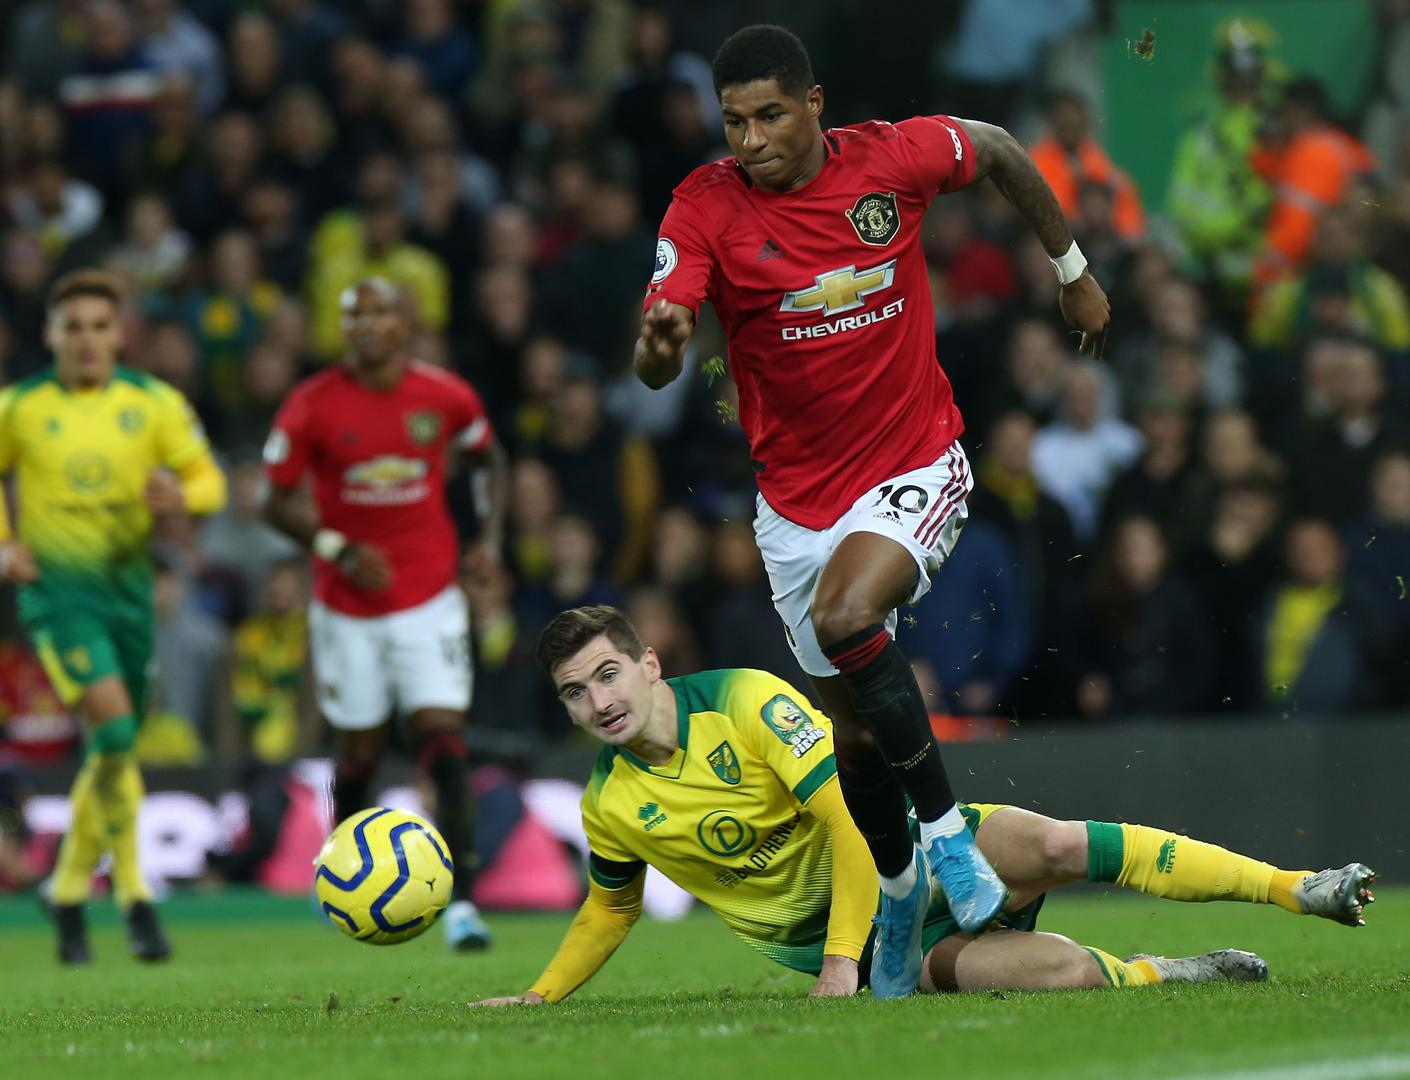 Marcus Rashford with the ball during Norwich City v Manchester United.